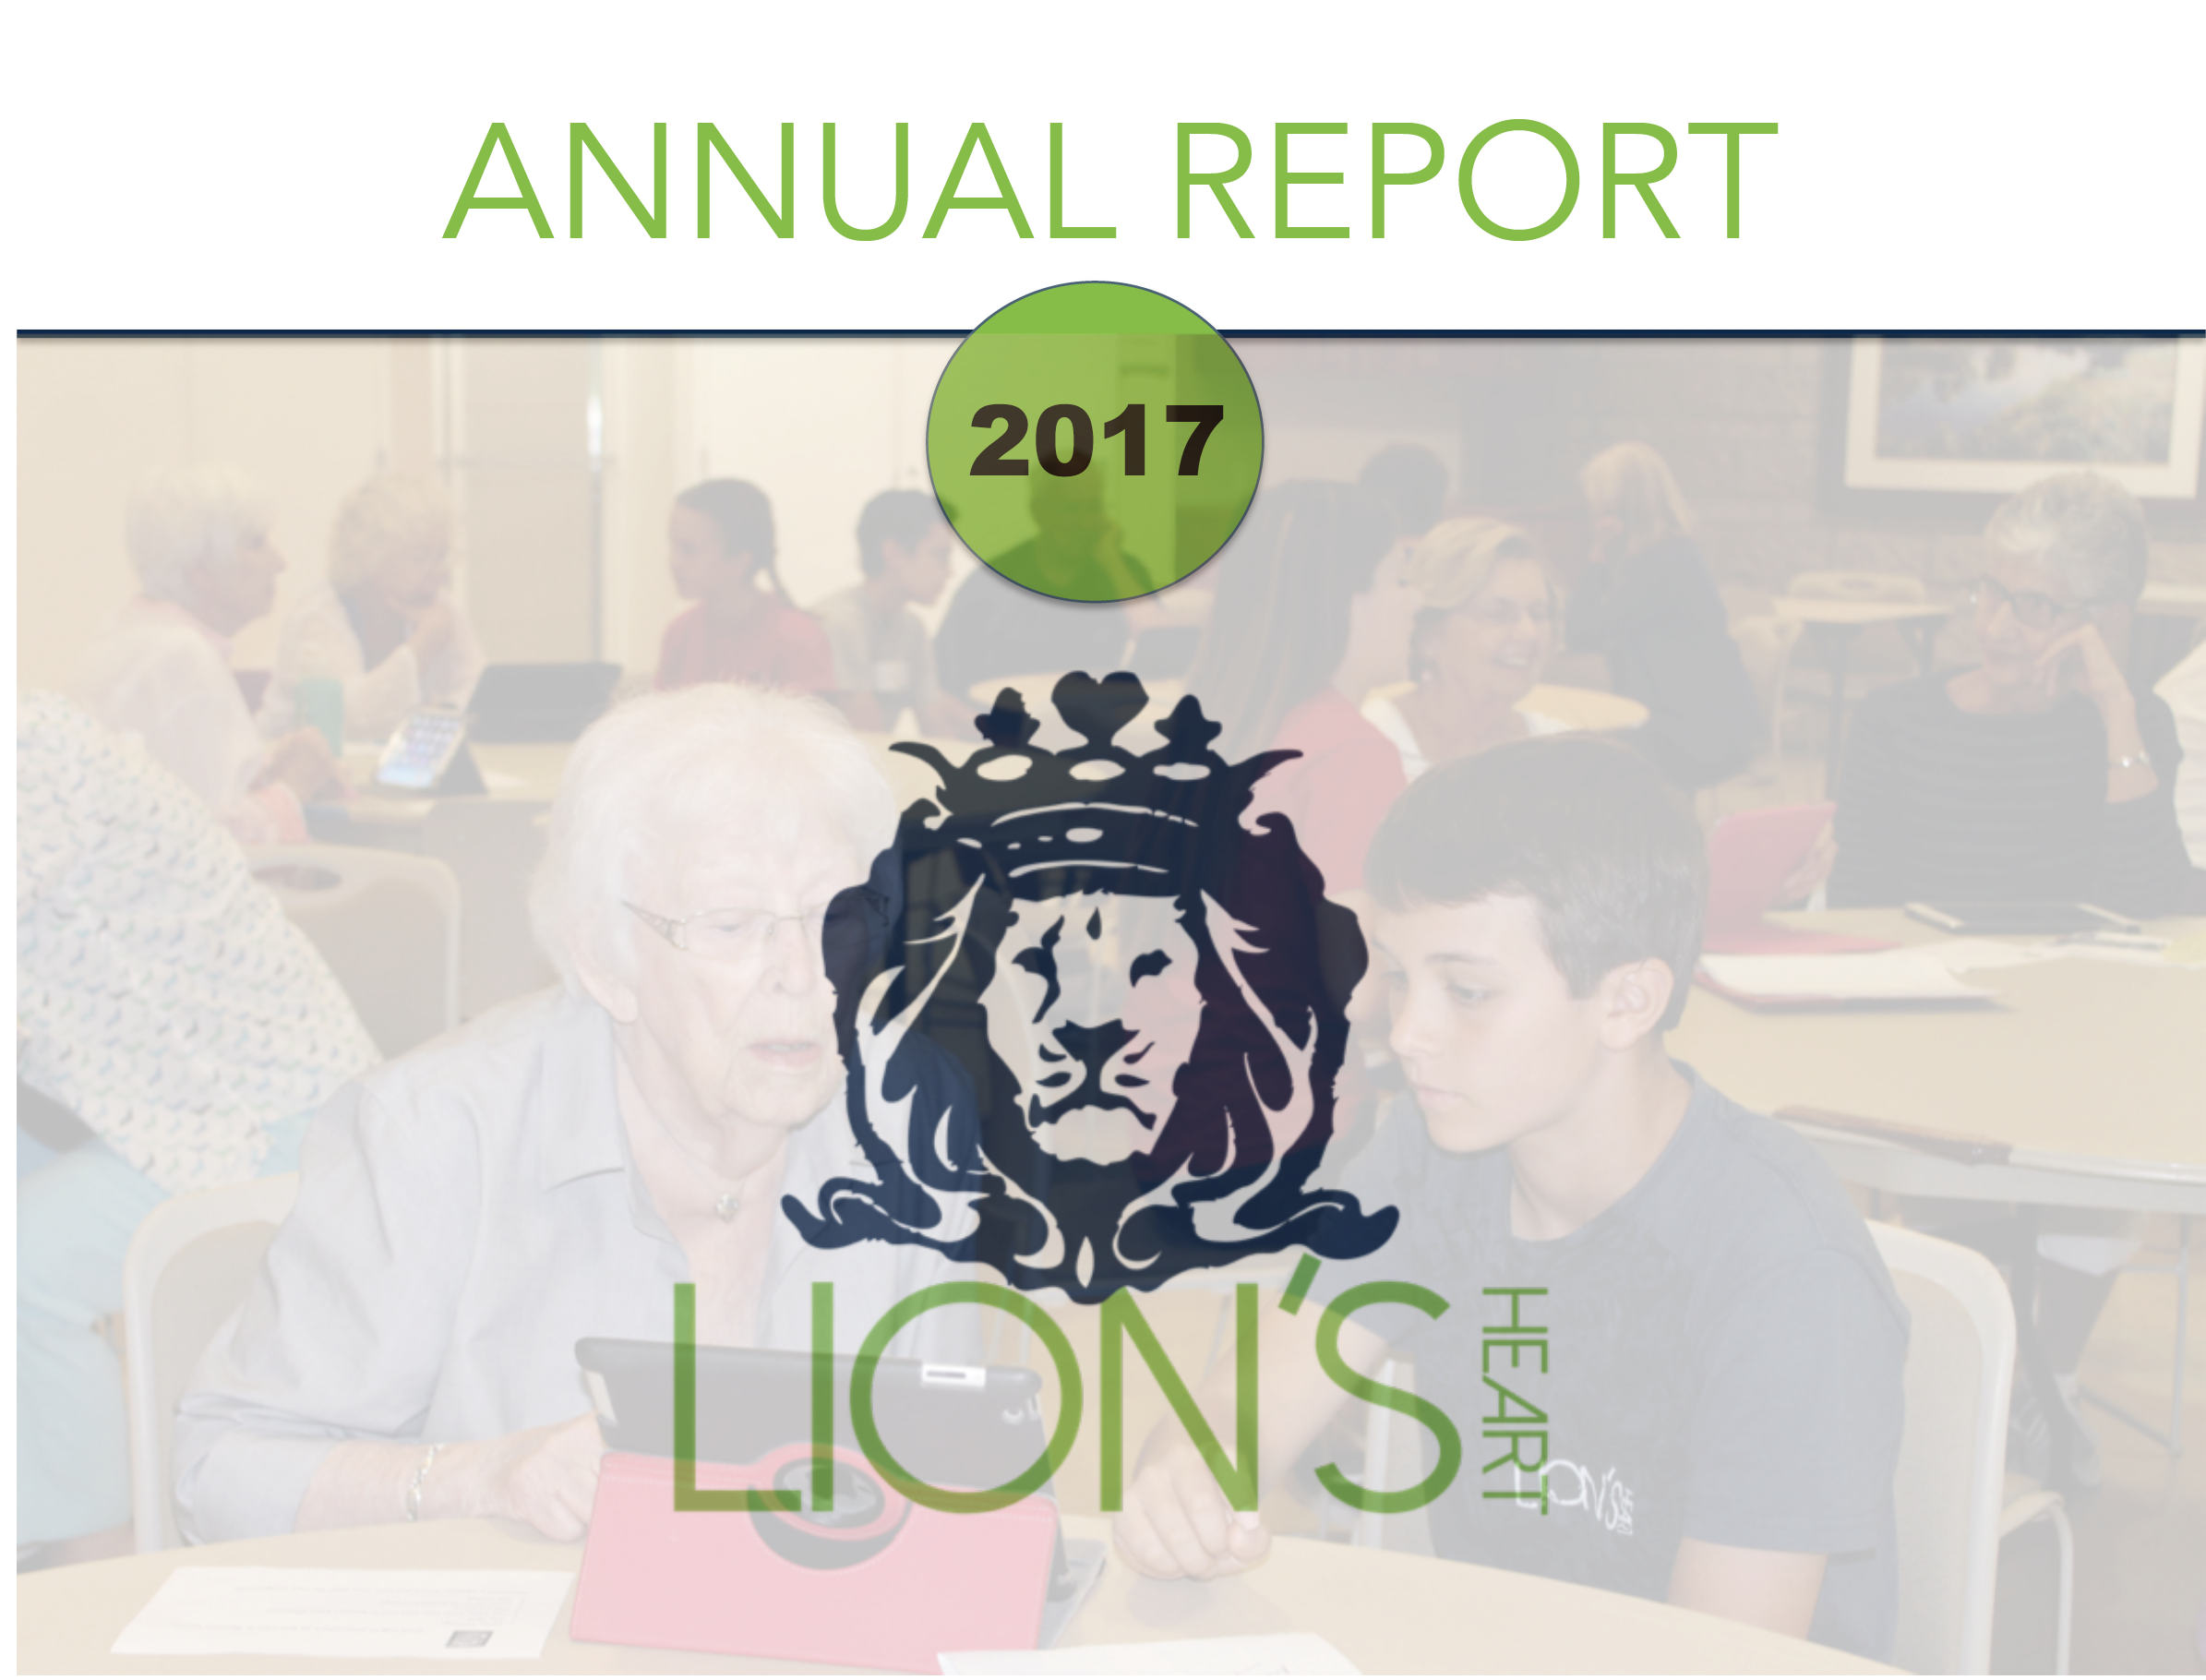 Lion's Heart 2017 annual report to download